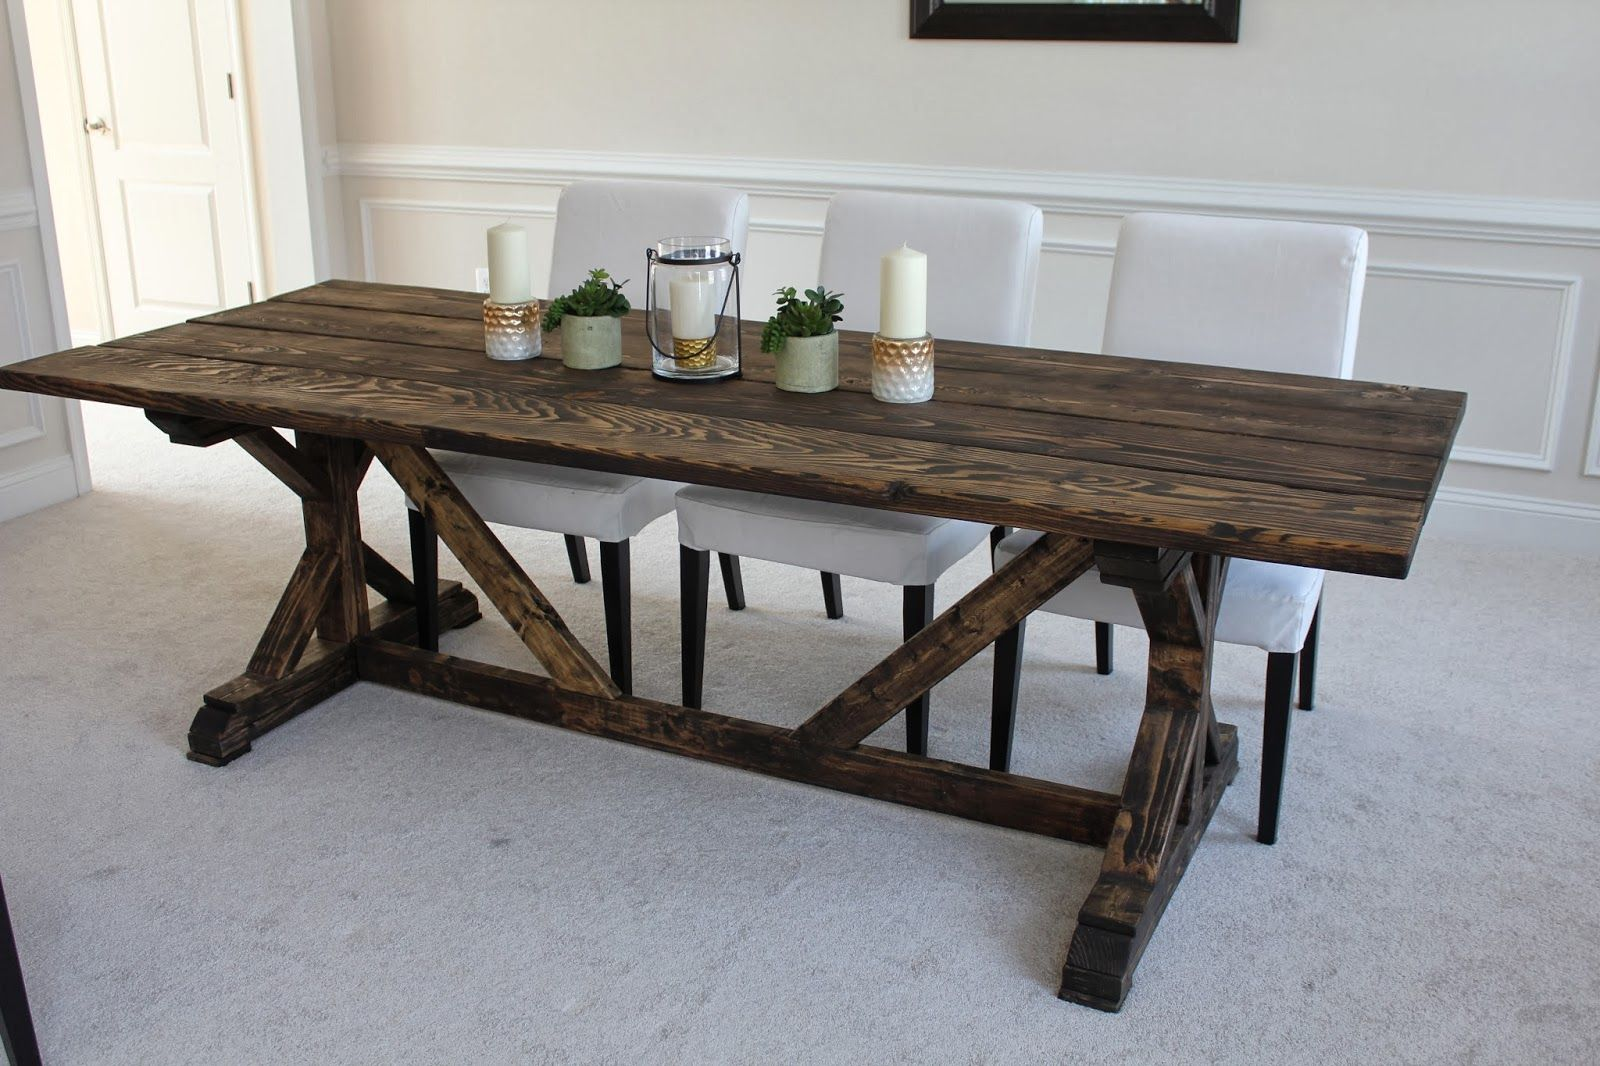 Diy Anthropologie Knockoff Farmhouse Table For Only 65 Using